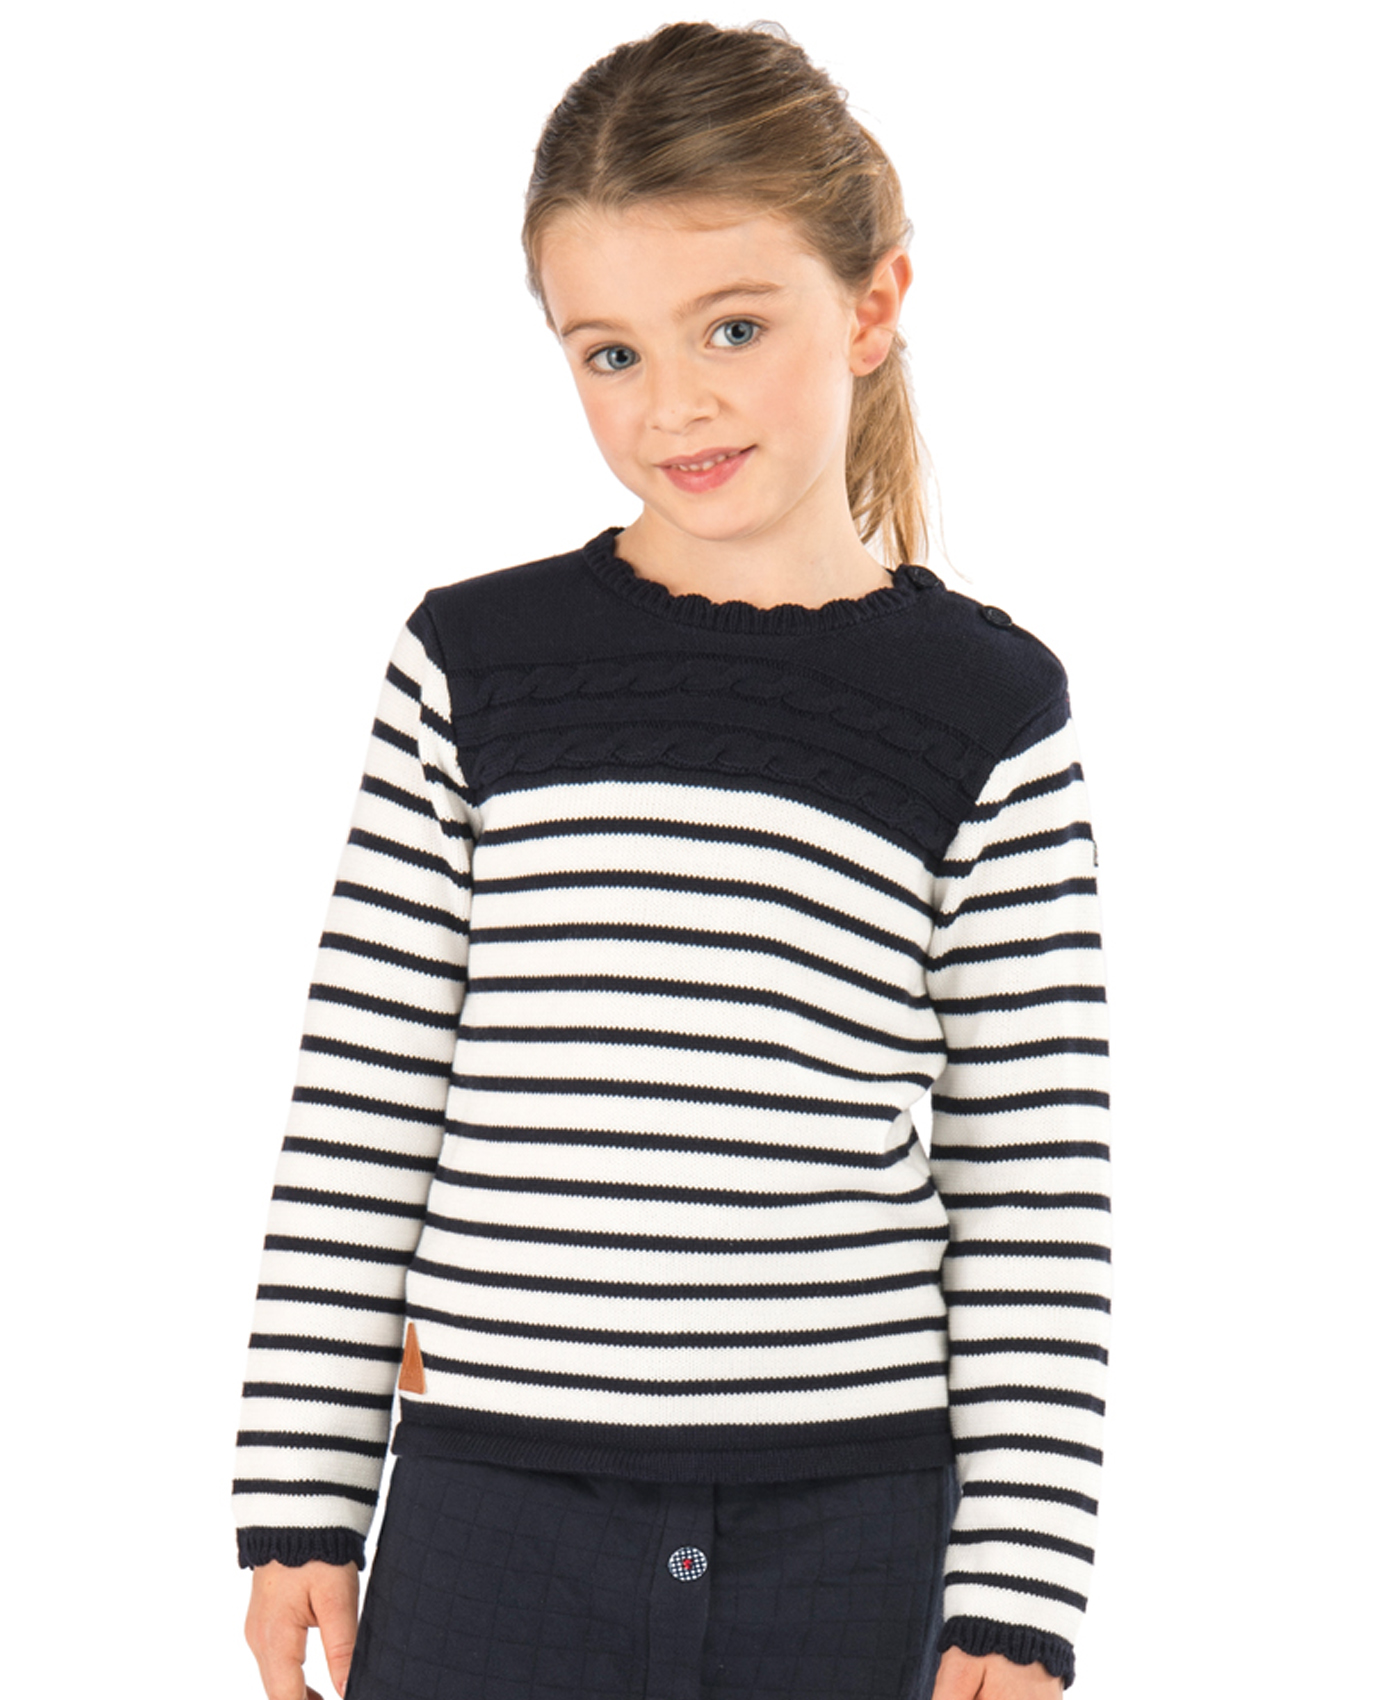 7733329e1e630 Mode Marine Enfant Pulls — Cocagnetires